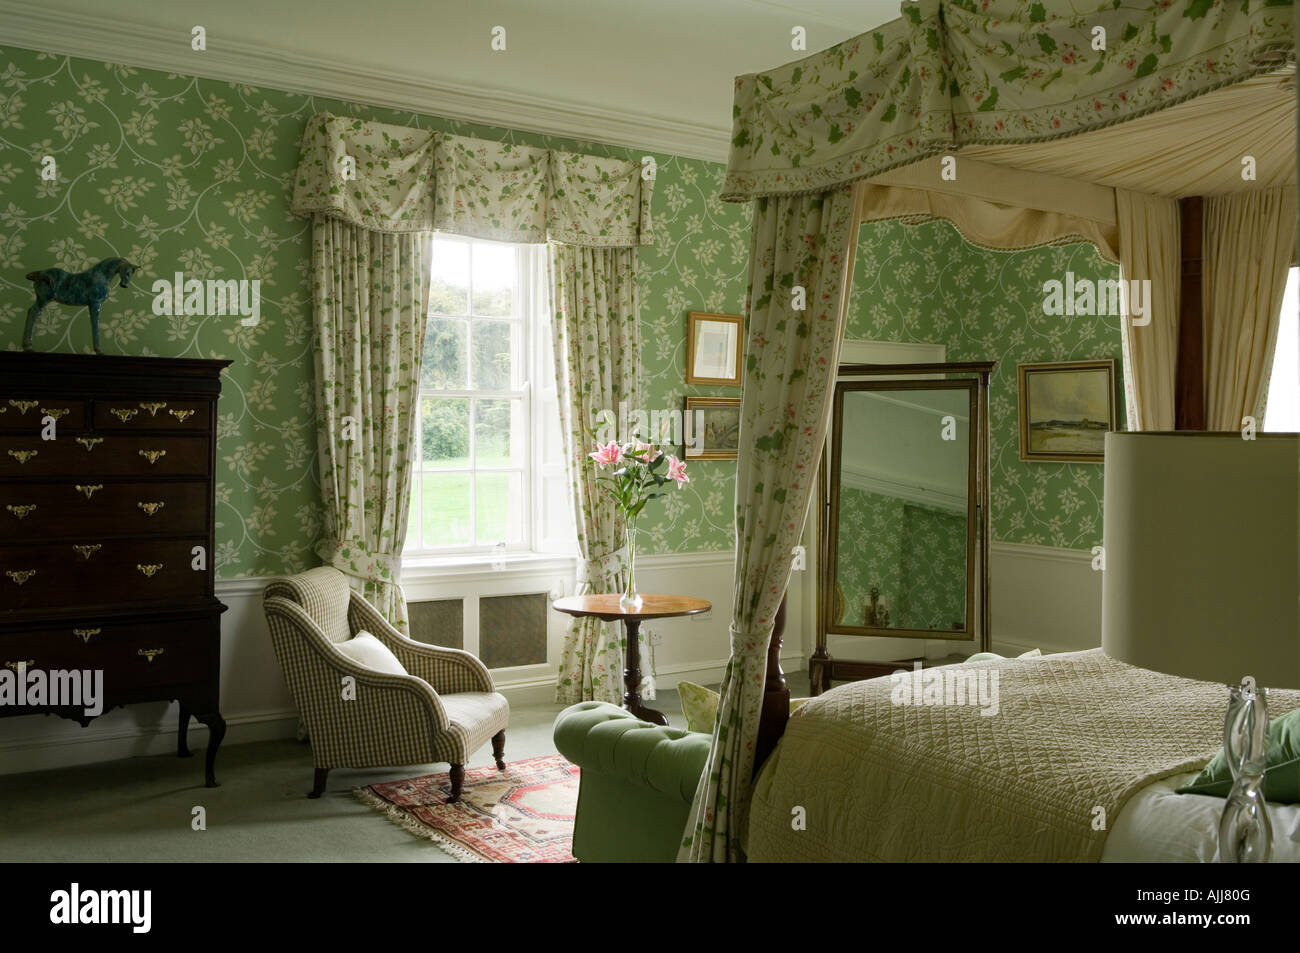 Bedroom with fourposter bed and green patterned wall paper in 17th century Irish castle - Stock Image